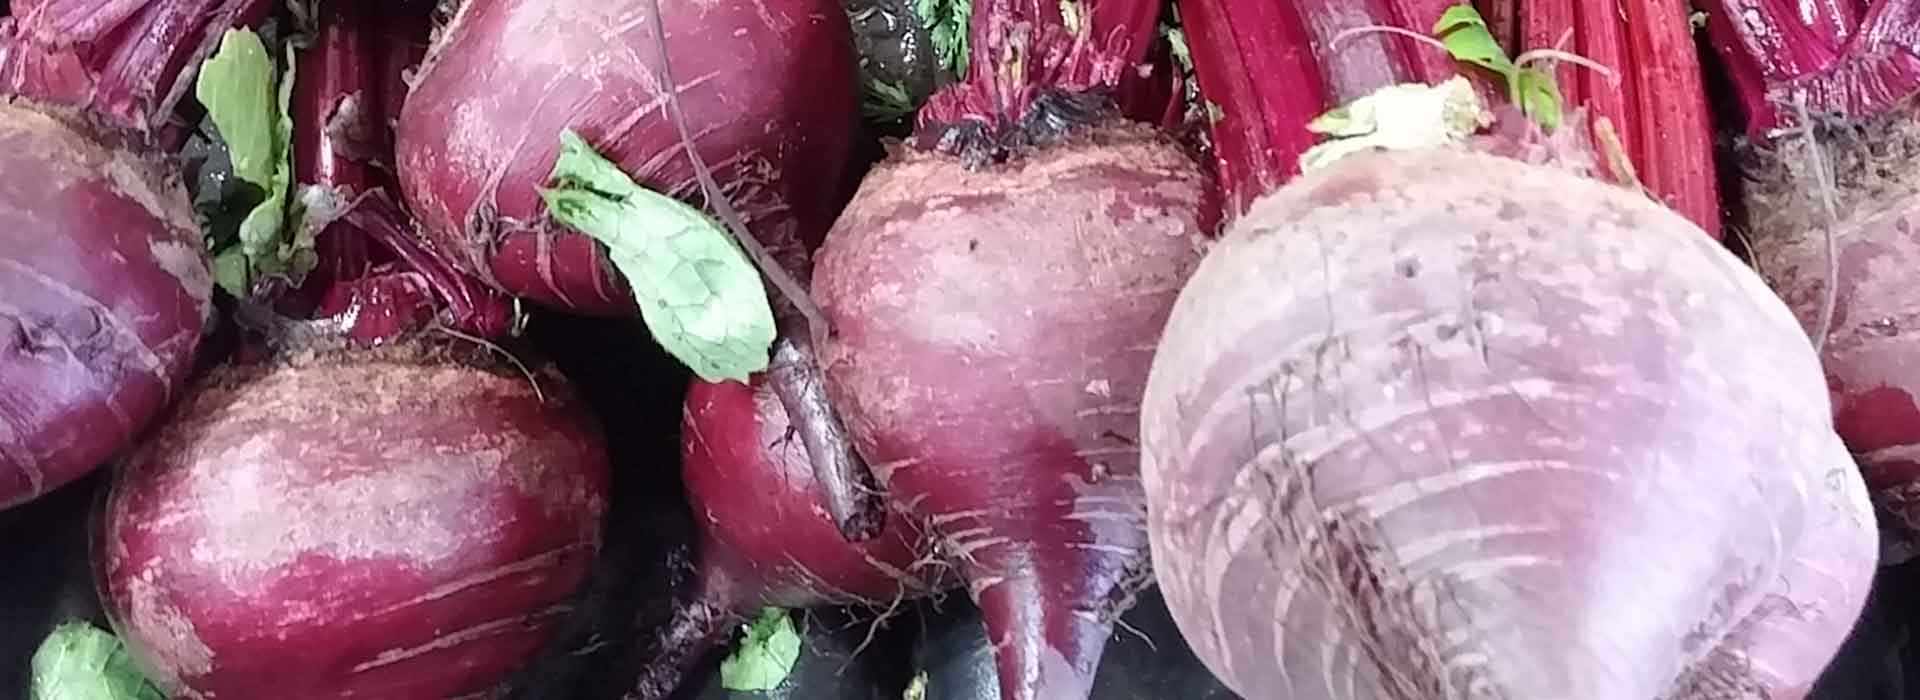 Growing Beetroot Or Beets In Your Vegetable Garden How To Grow Beet Or Beetroot Youtube